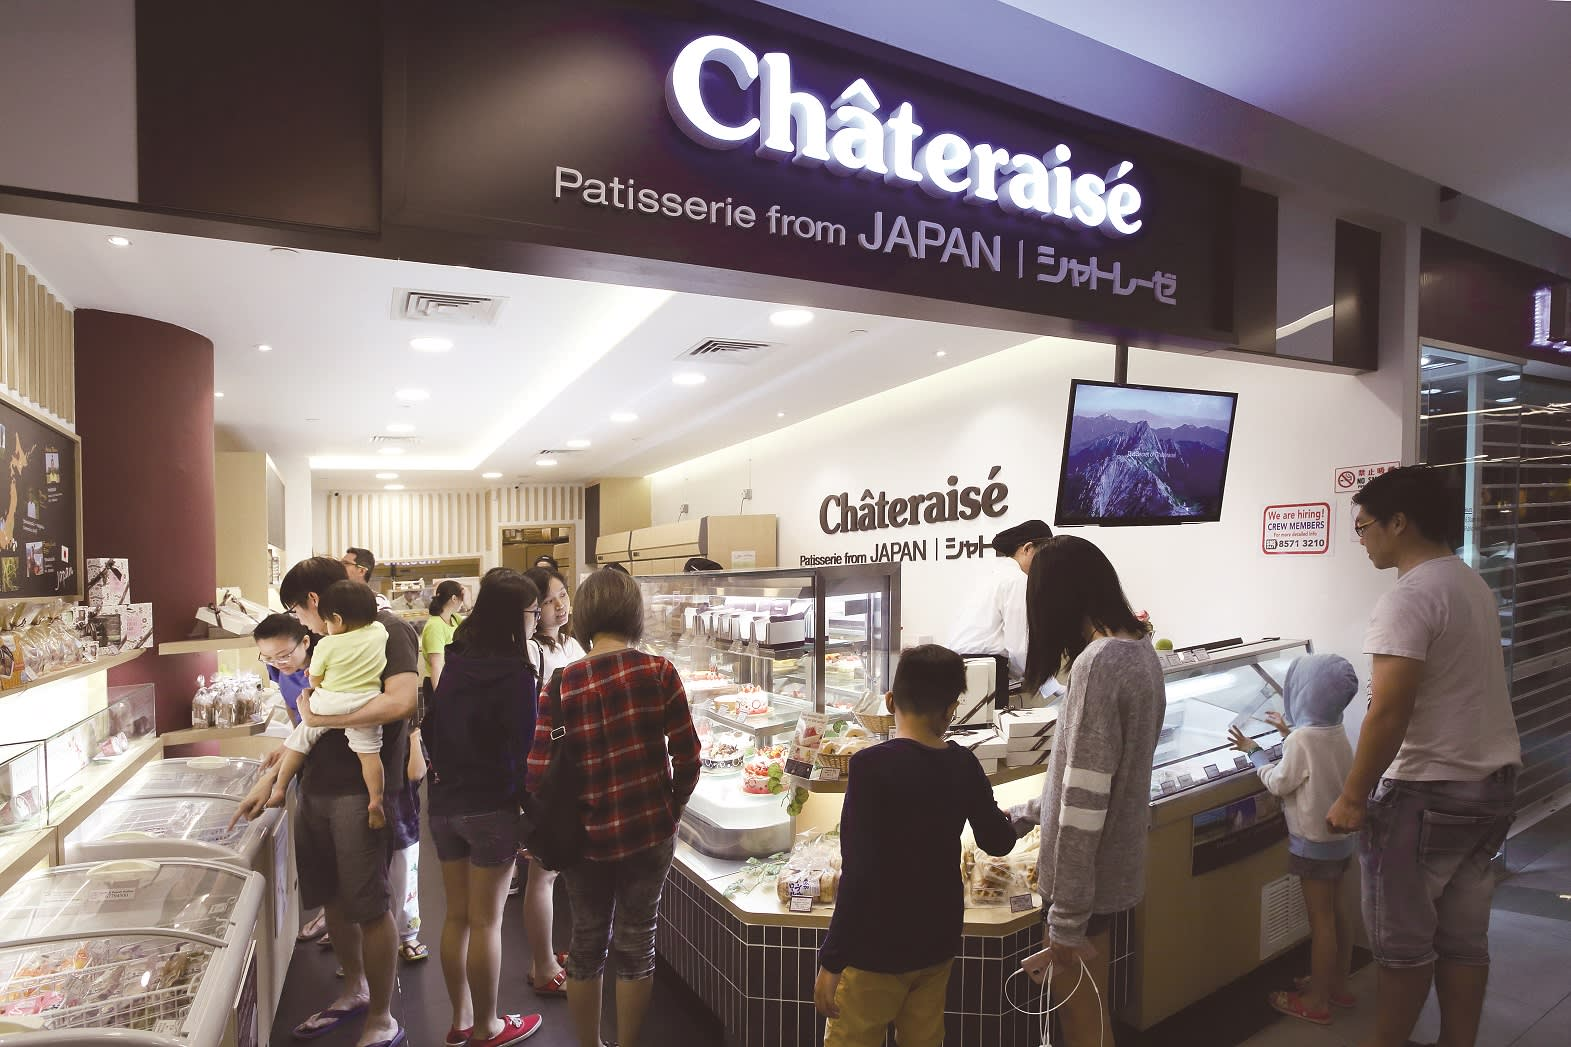 Made-in Japan cake exports satisfy Southeast Asia's sweet